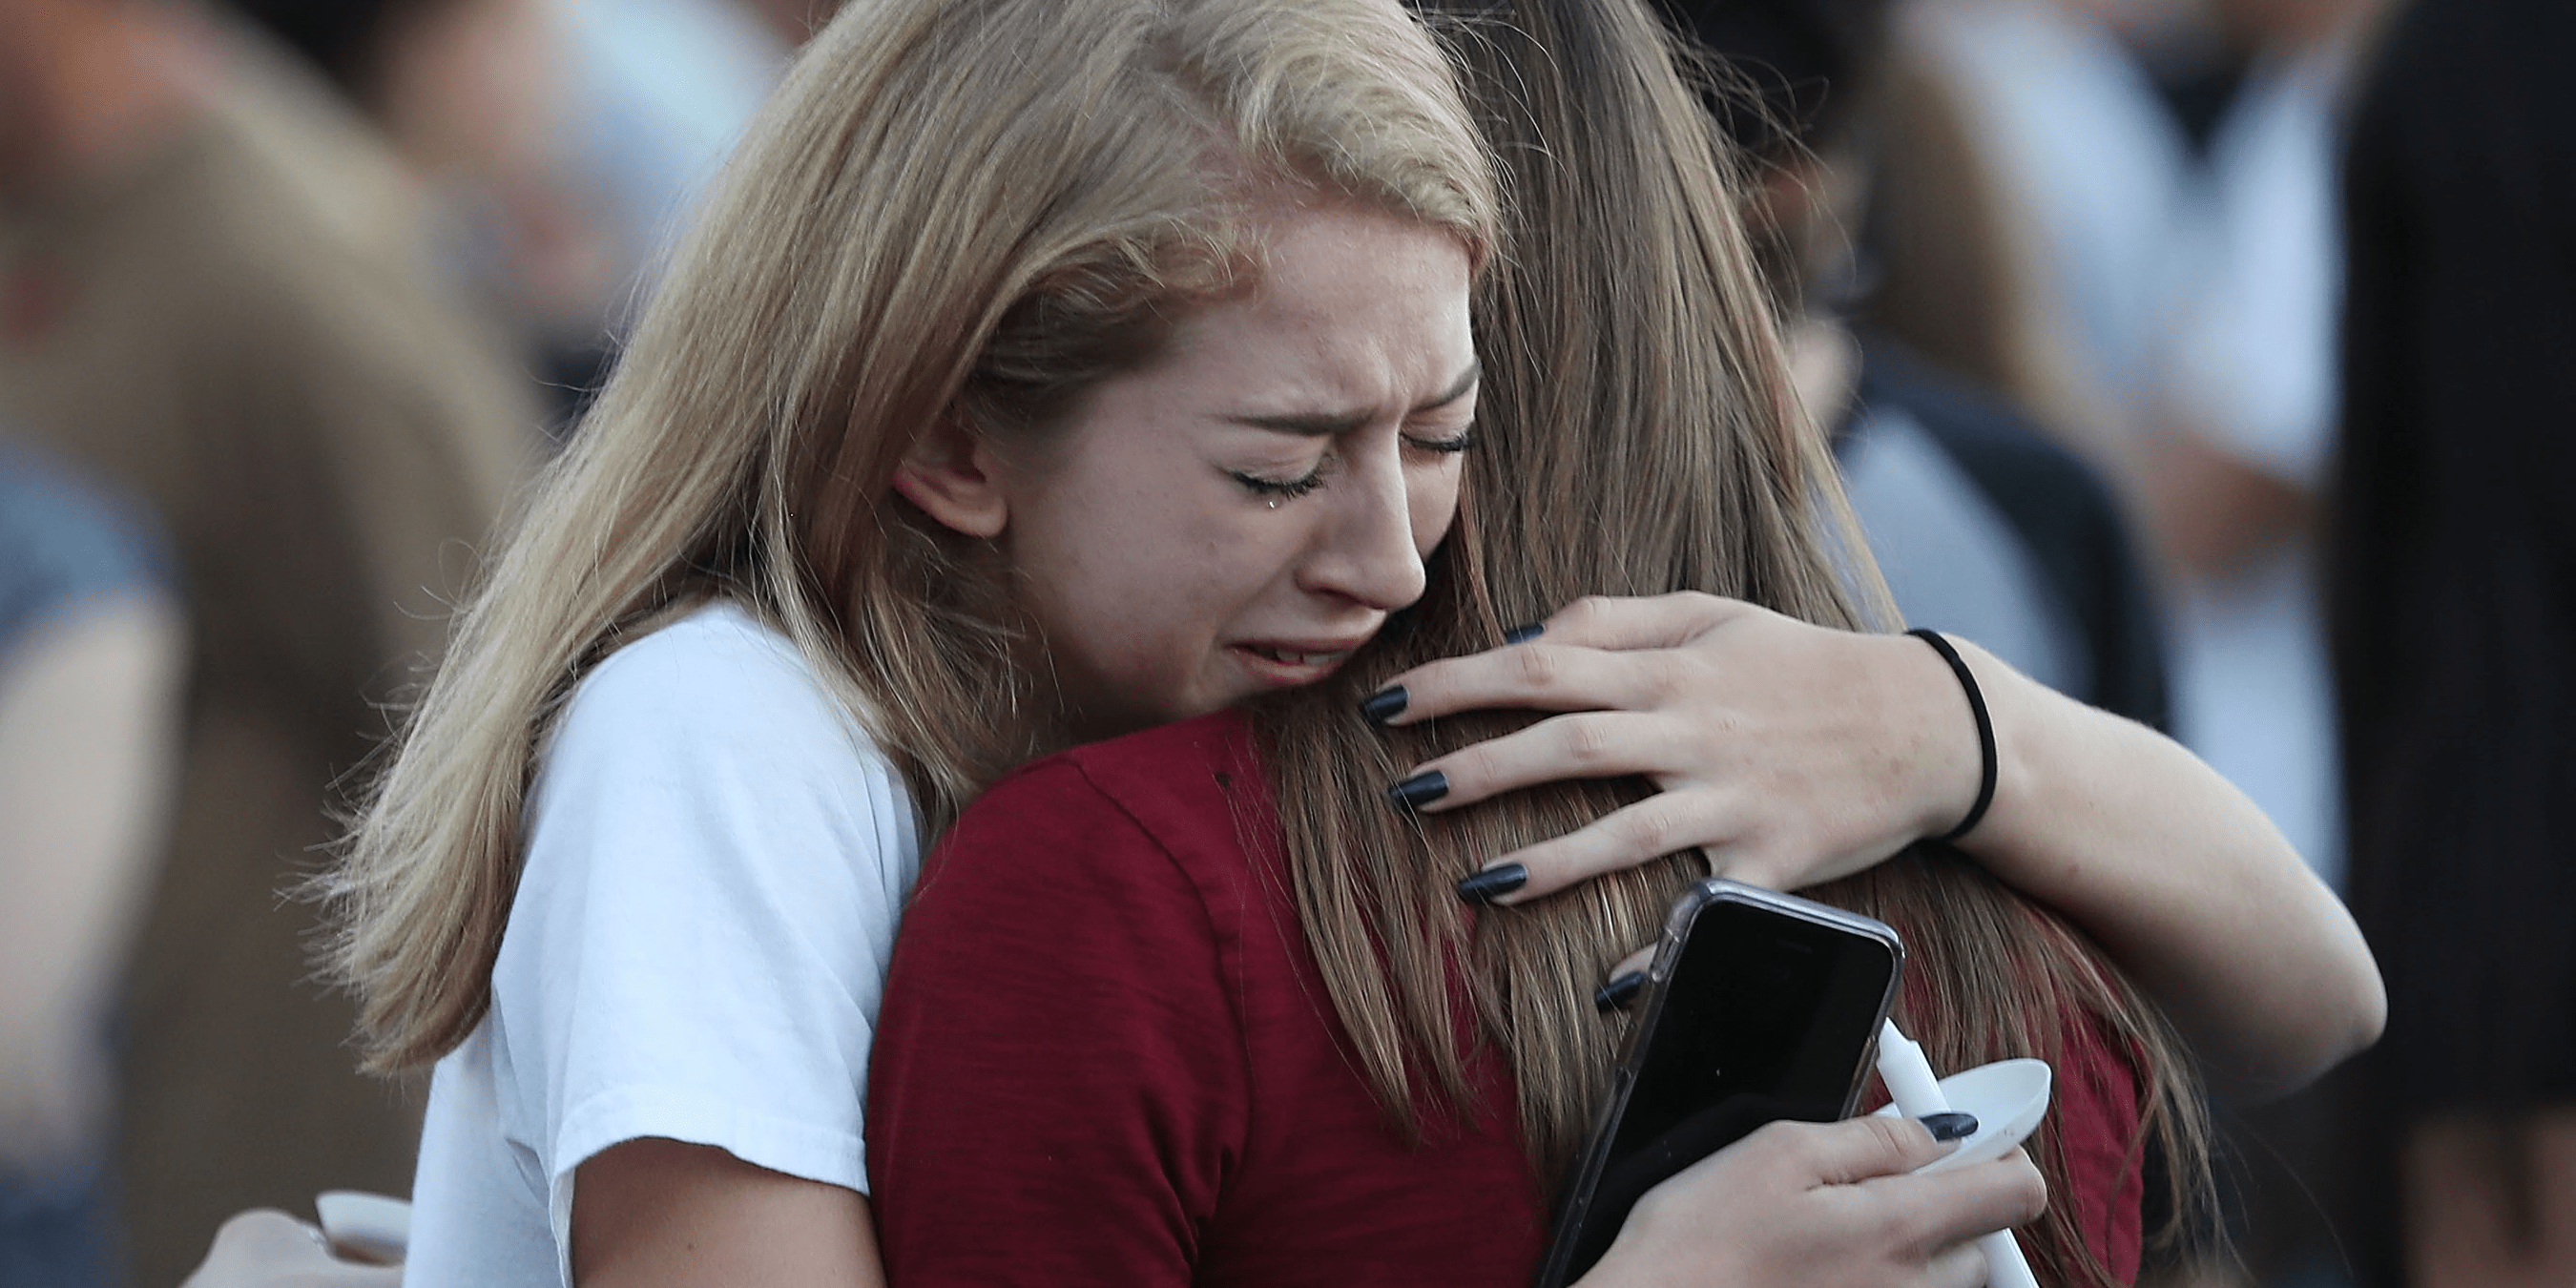 Students From The School Shooting Are Lashing Out Against